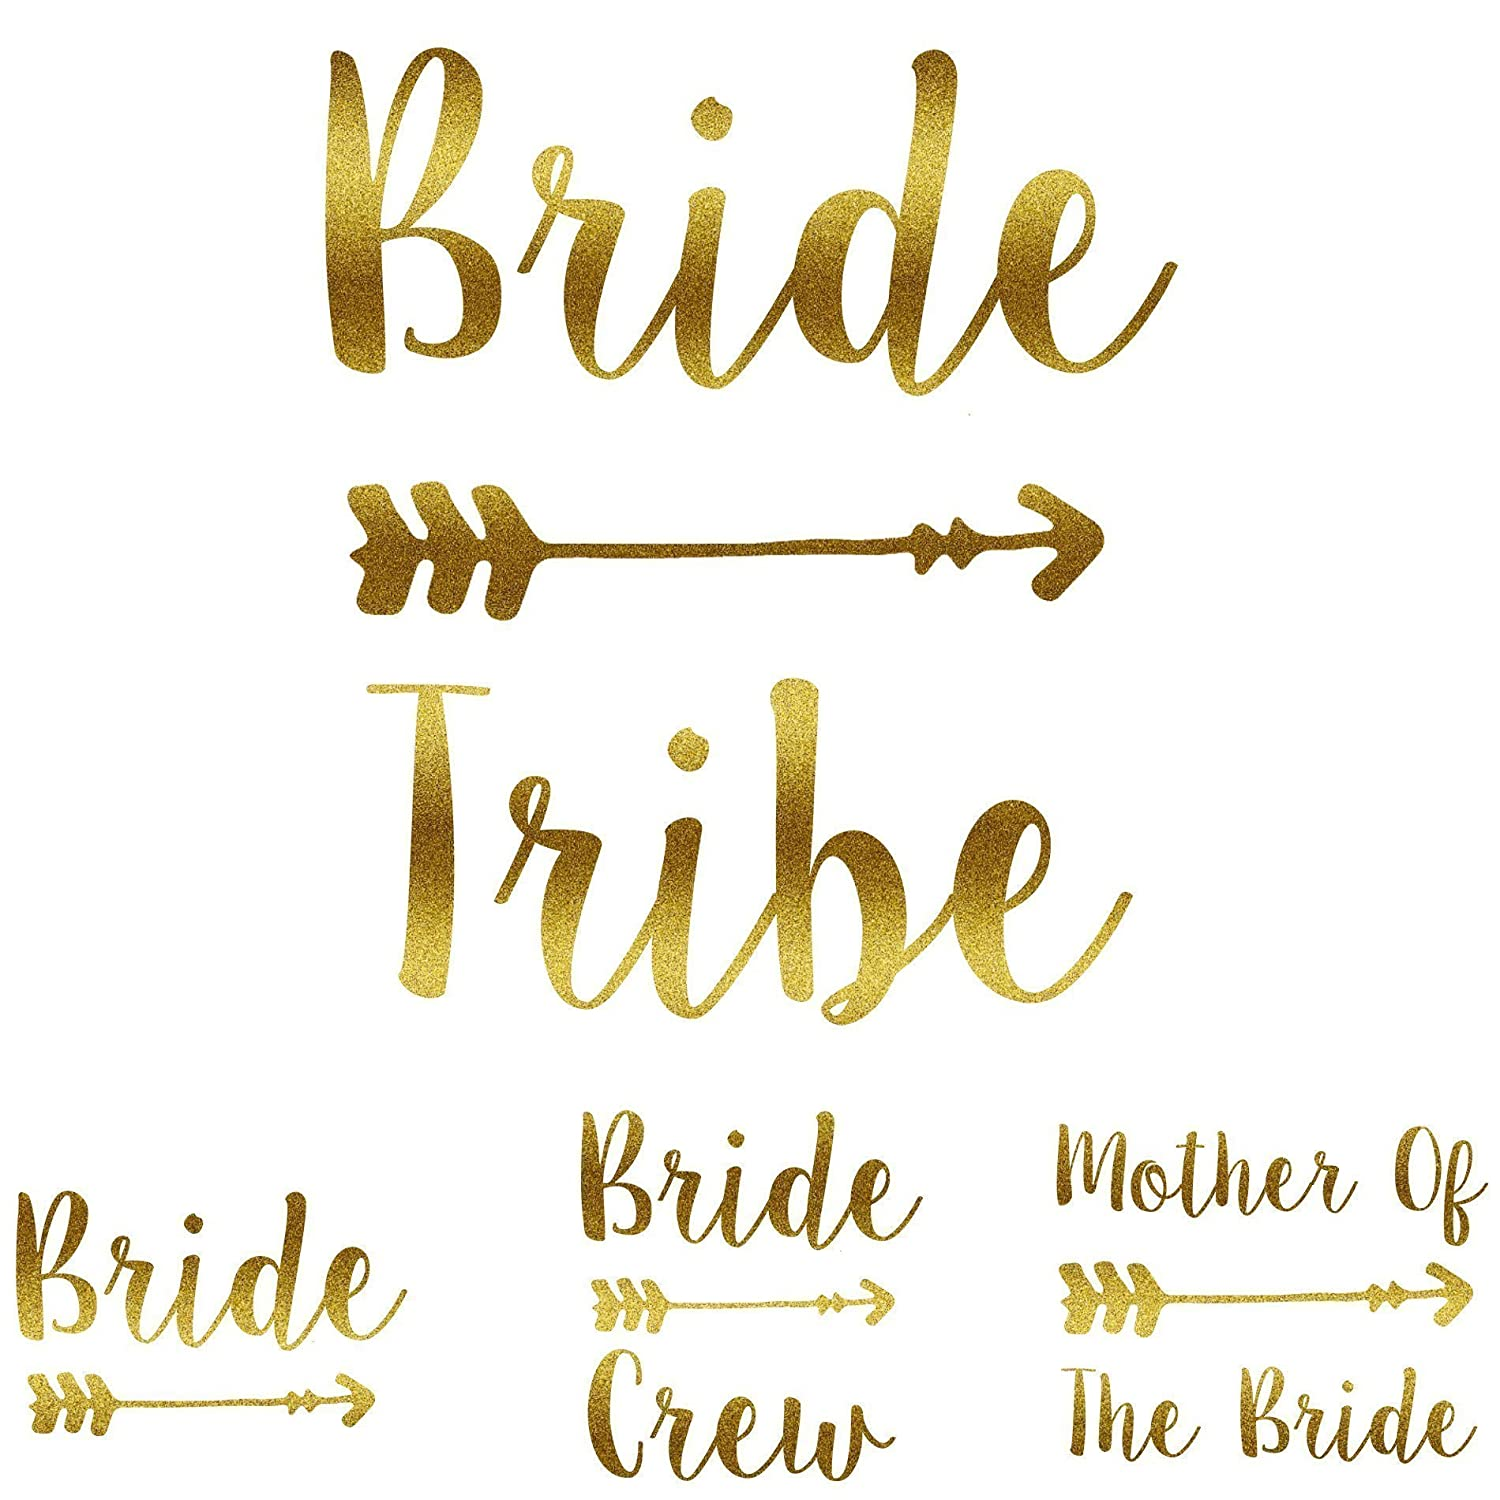 Team Bride Iron On T Shirt Transfer Tribe Squad Bride To Be Hen Do Party Vinyl